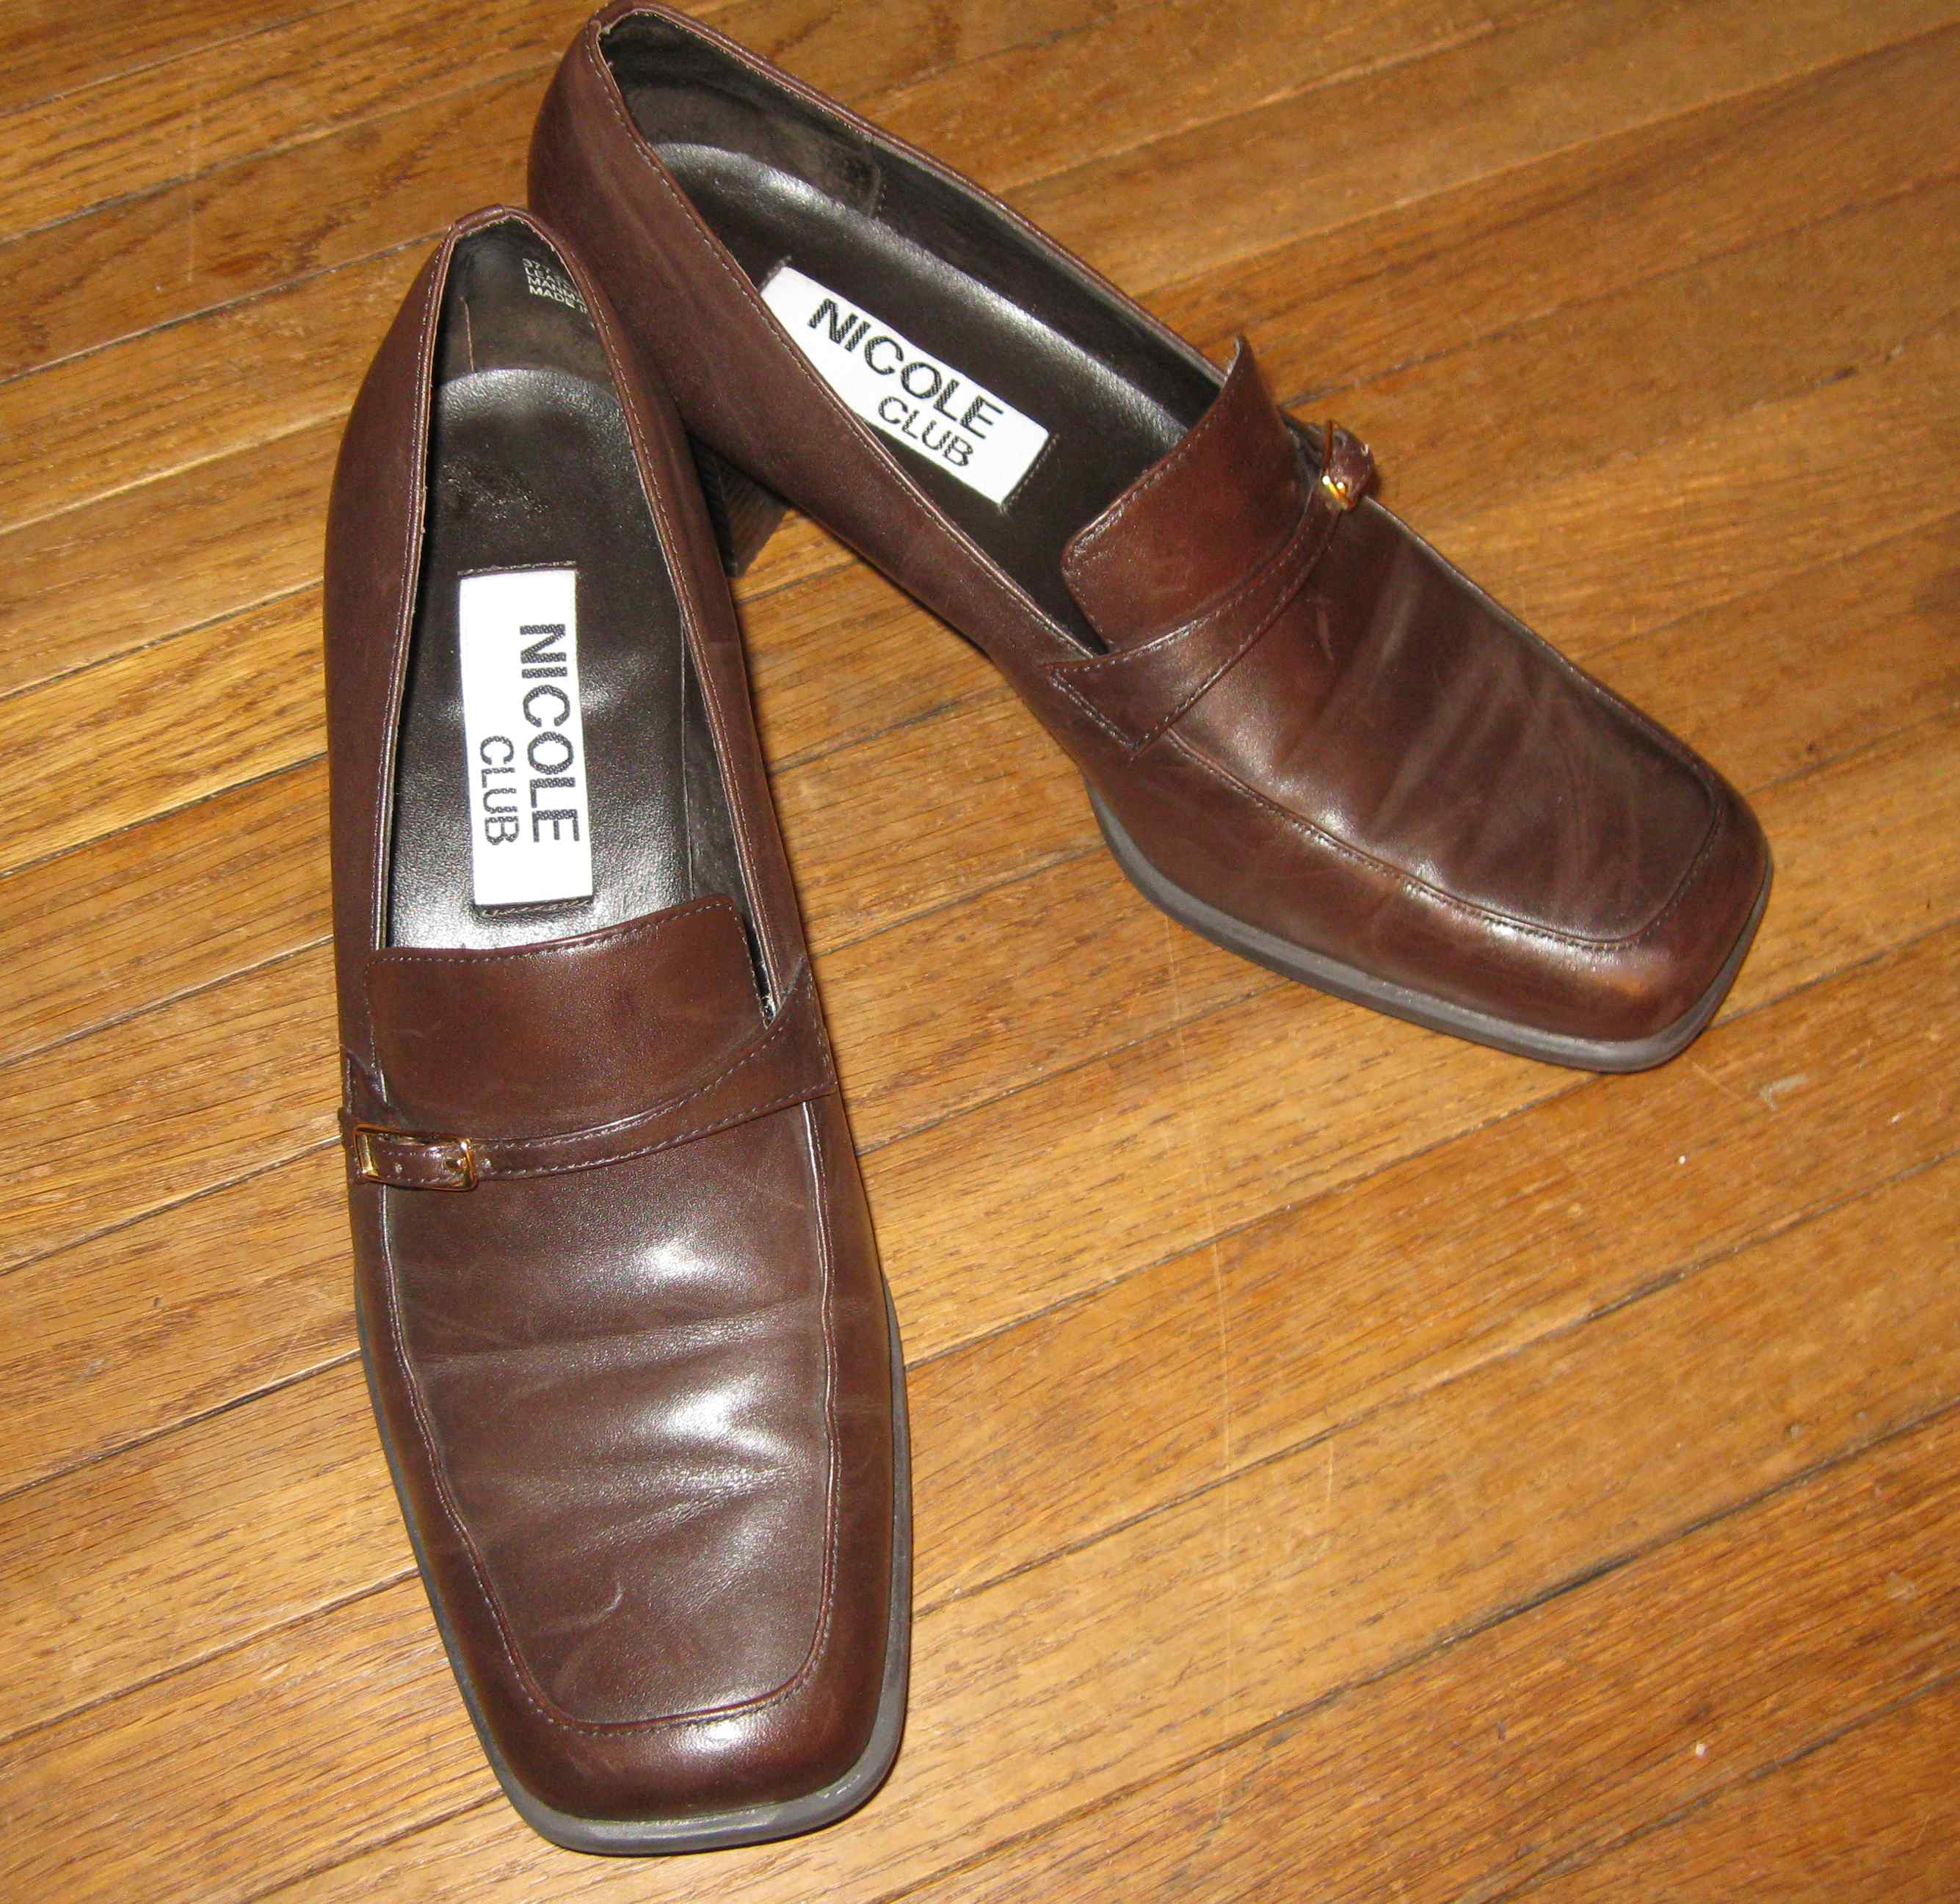 $6 shoes Better Brands consignment shop